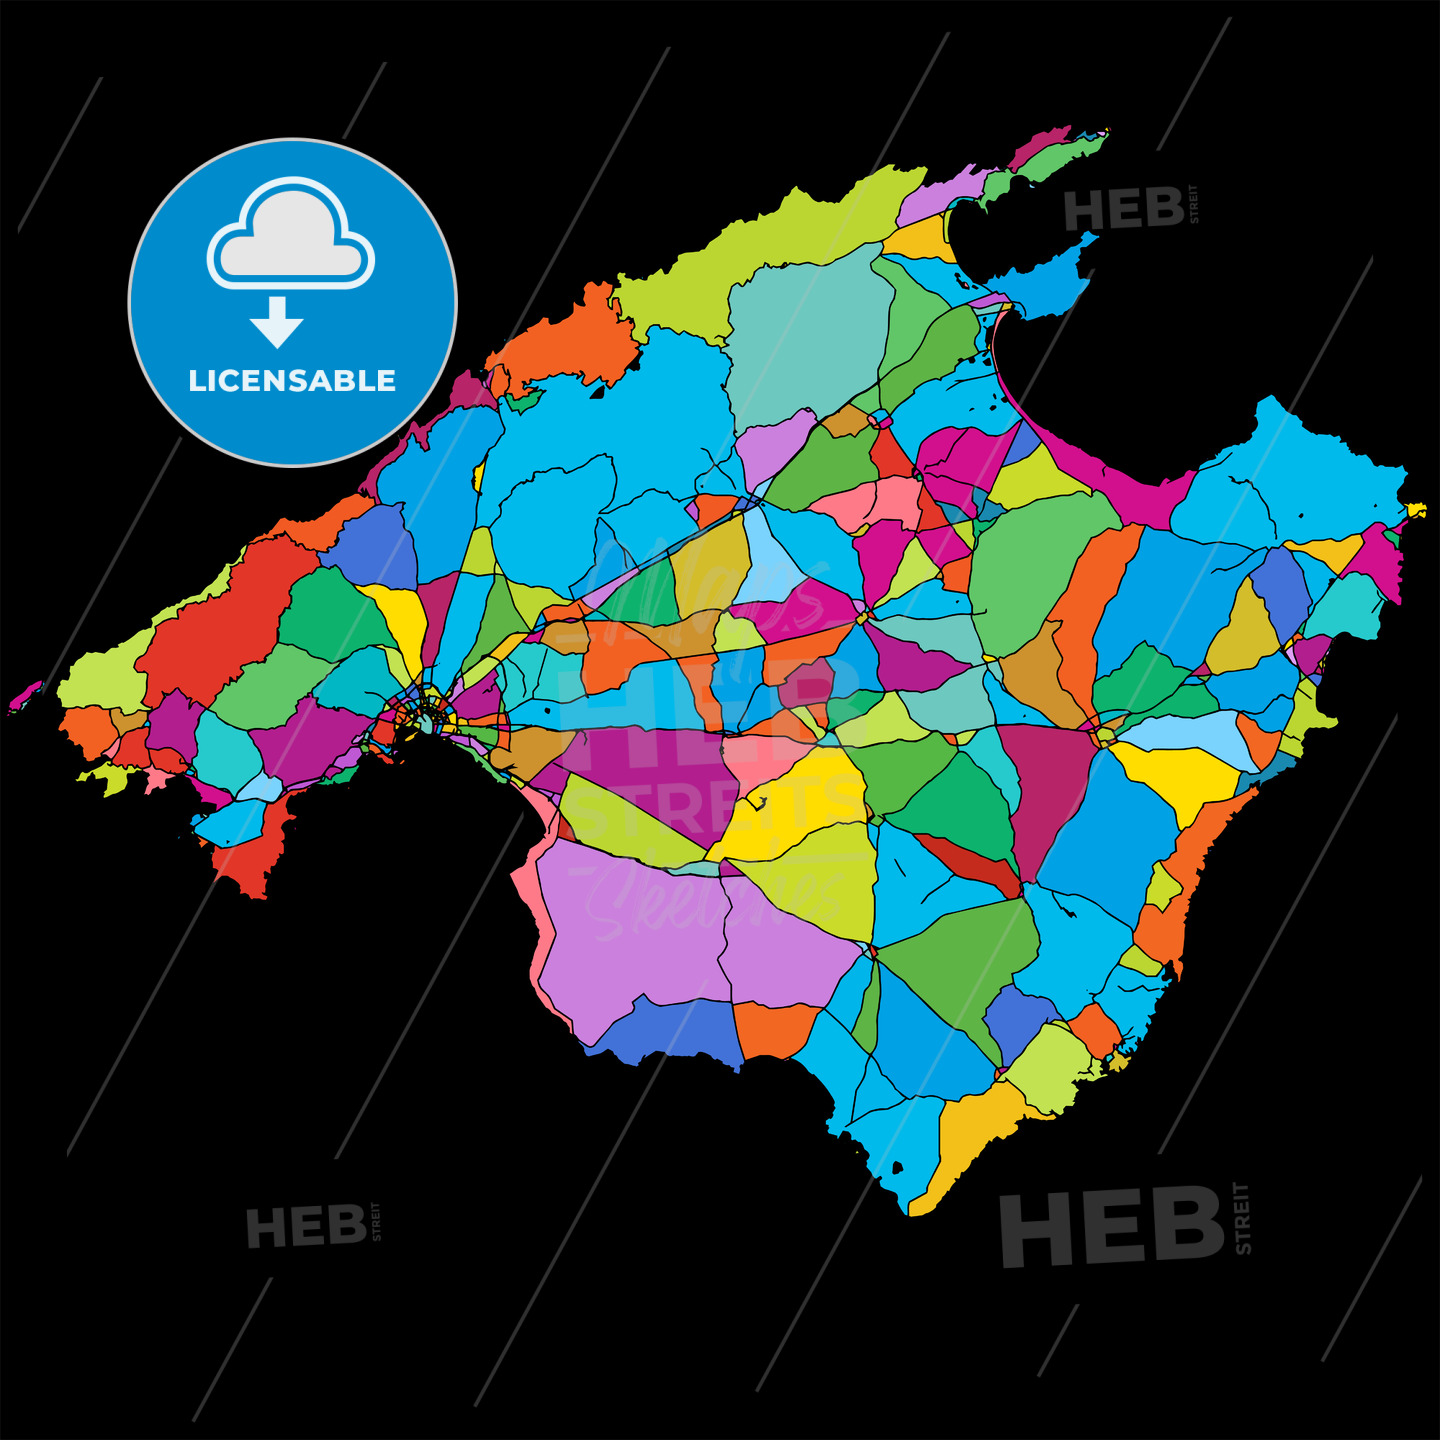 Mallorca Colorful Vector Map on Black - HEBSTREIT's Sketches